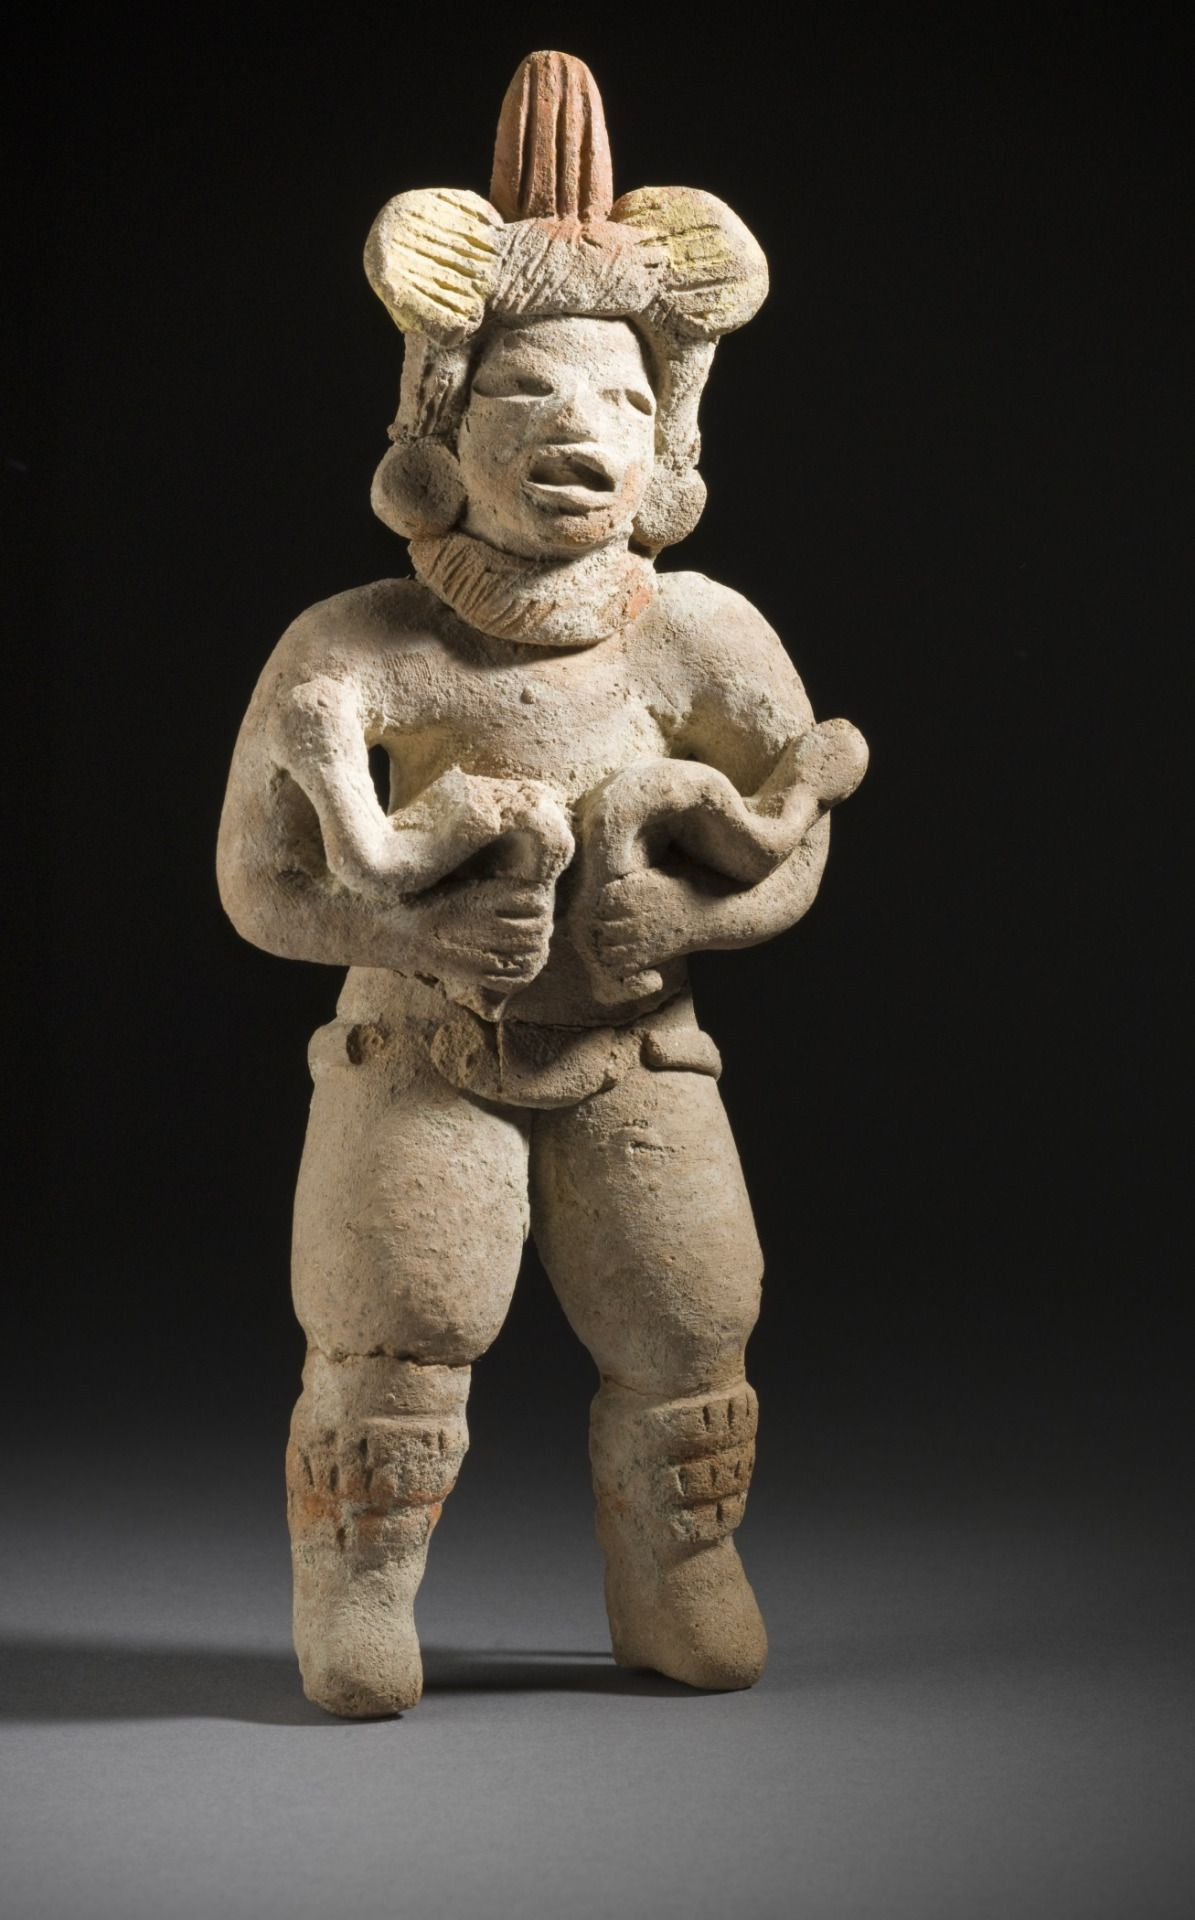 Dancer with SnakesMexico, Guerrero, Xochipala, 1000-500 B.C.Sculpture, Ceramic with postfire applied pigmentLACMA